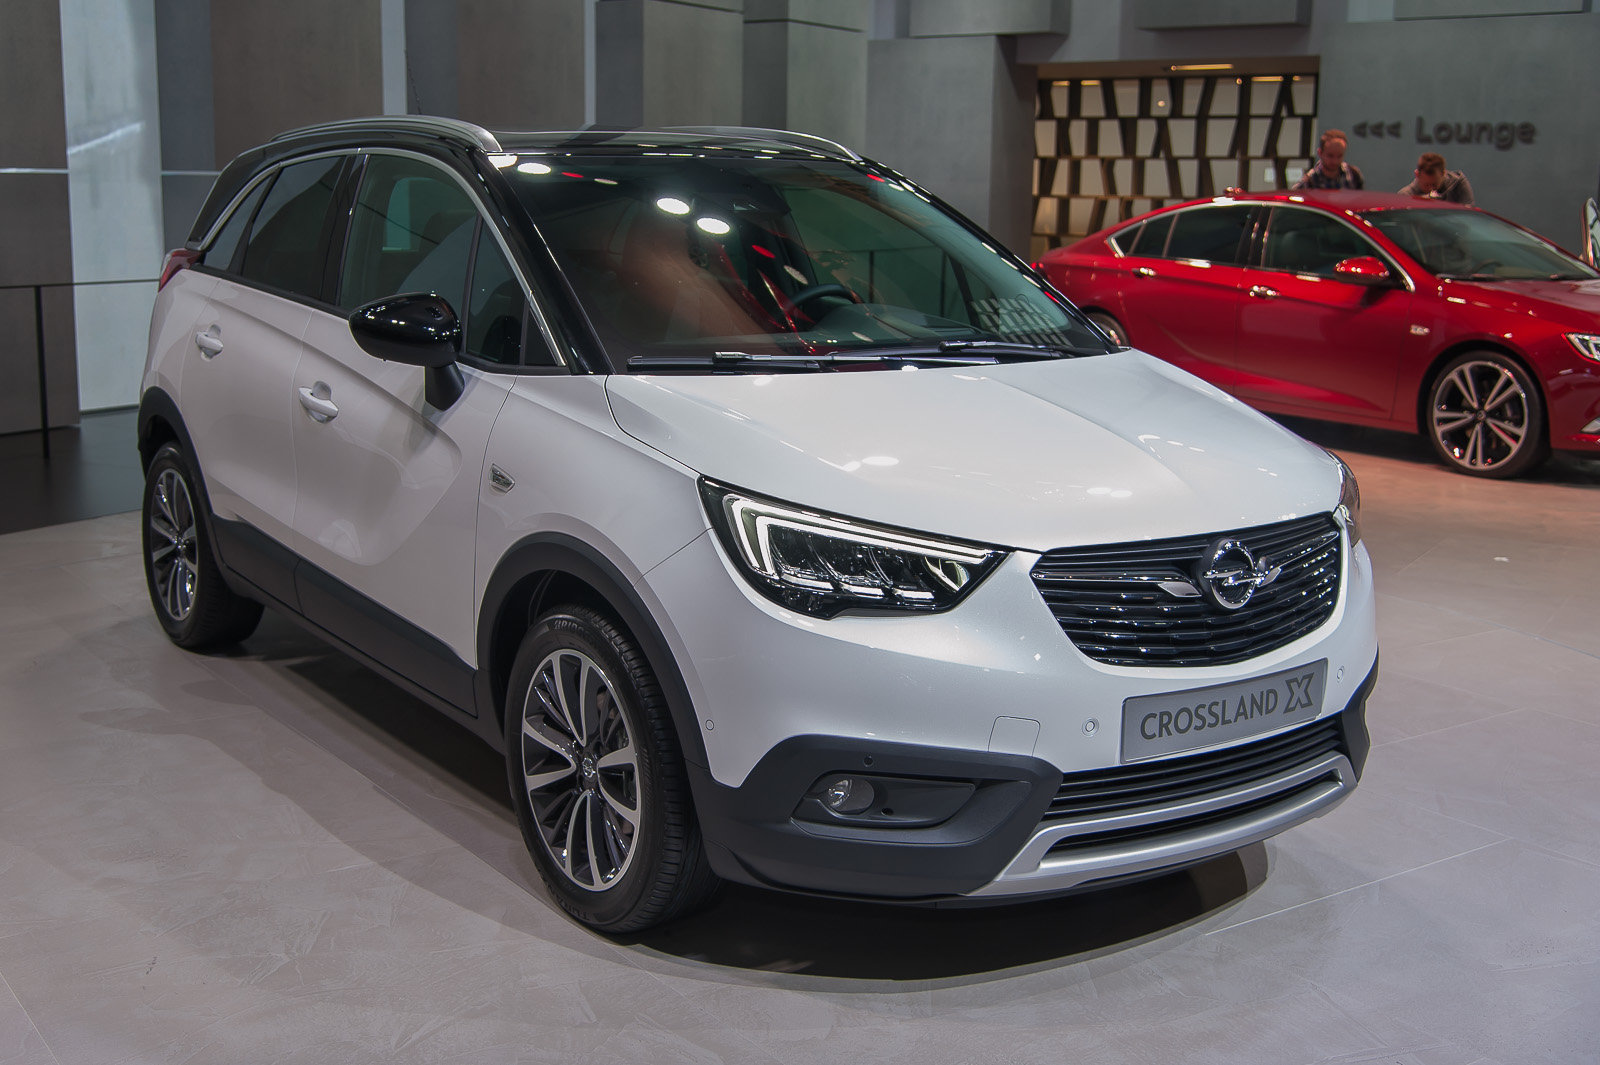 foto opel crossland x crossover da citt. Black Bedroom Furniture Sets. Home Design Ideas